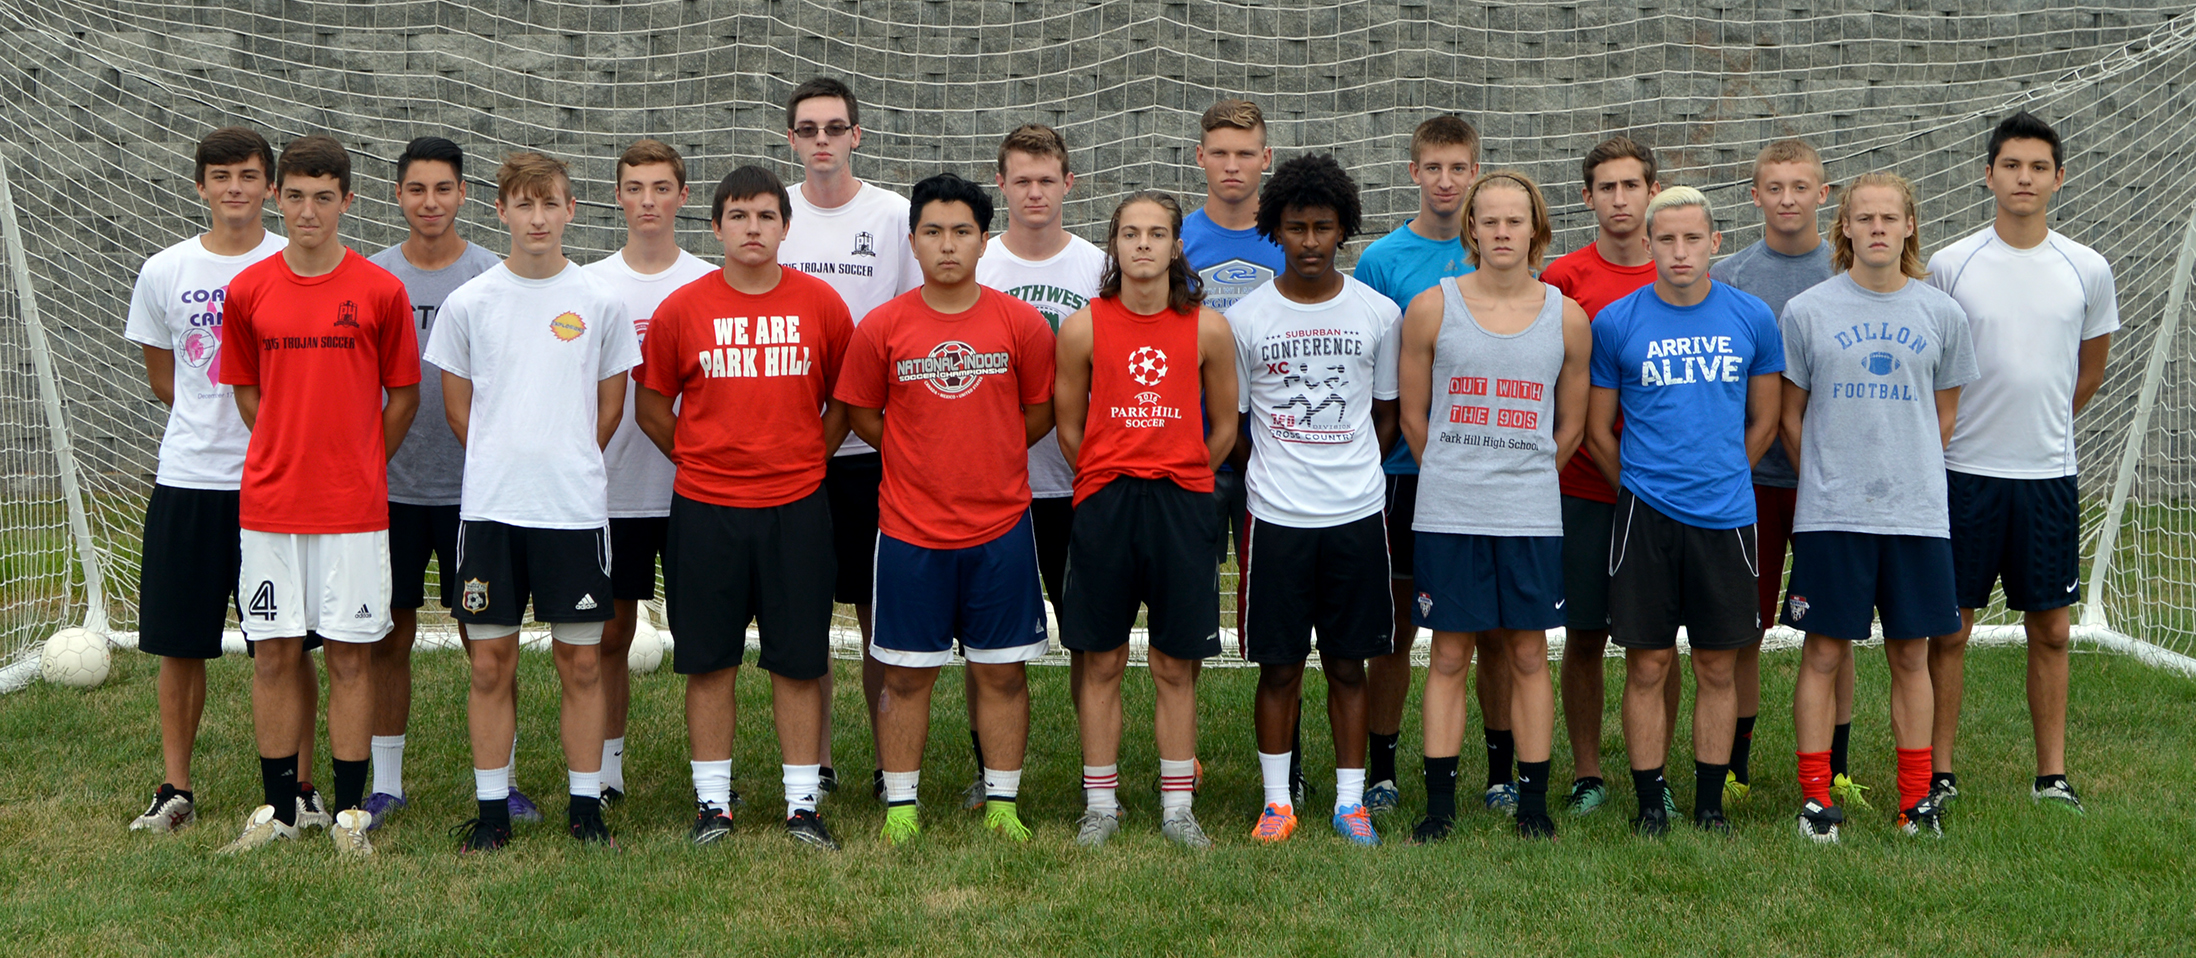 Front row, from left: Ryan Long, Jack Lowe, Matt Rodrigues, Damon Borrayo, Stephen Waldon, Abenezer Abraham, Alec Goodwin, Nico Bodmediano and Erik Goodwin. Back row, from left: Andrew Rich, Paulo Murguia, Jackson Turner, Rolly Abbott, Kyle Timmerman, Jackson Foutch, Jack Austin, Chris Munoz, Aaron Simpson and Elliot Hamilton